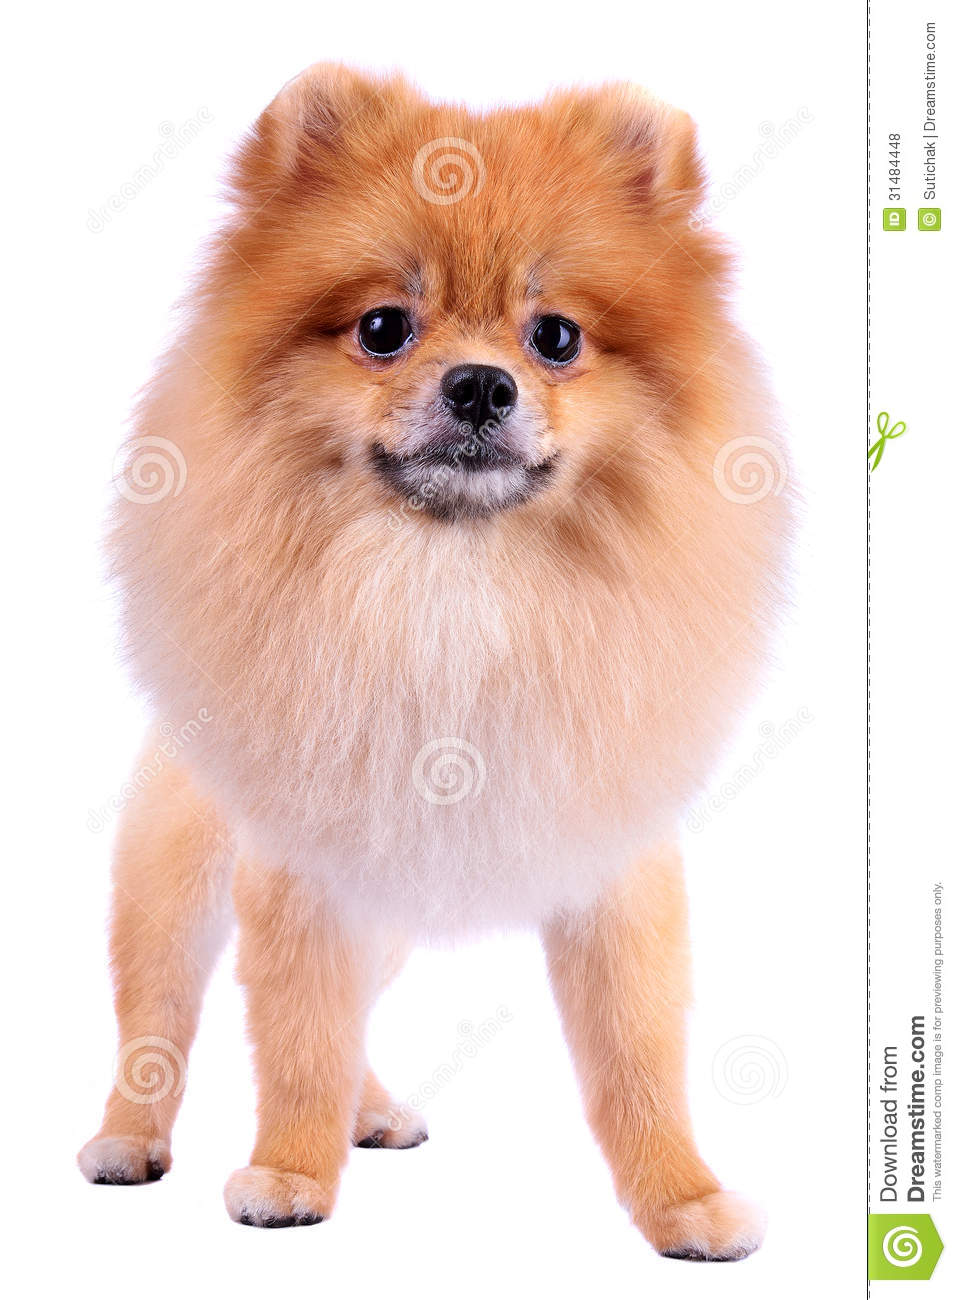 grooming lion dog hair pomeranian dog stock photo image 31484448. Black Bedroom Furniture Sets. Home Design Ideas